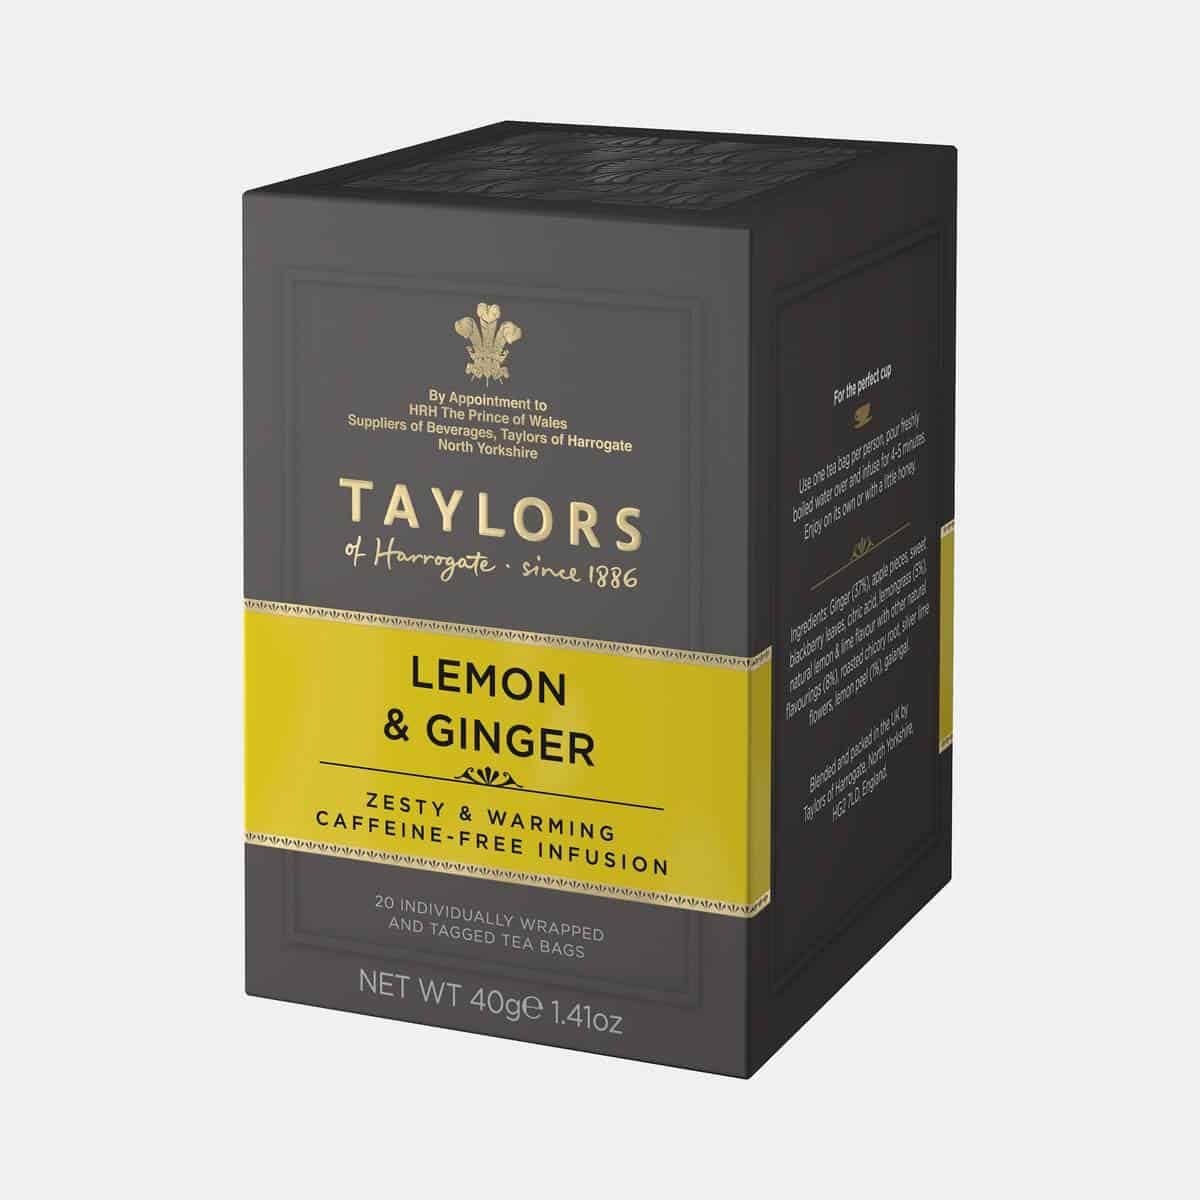 Taylors of Harrogate Lemon & Ginger Tea 40g